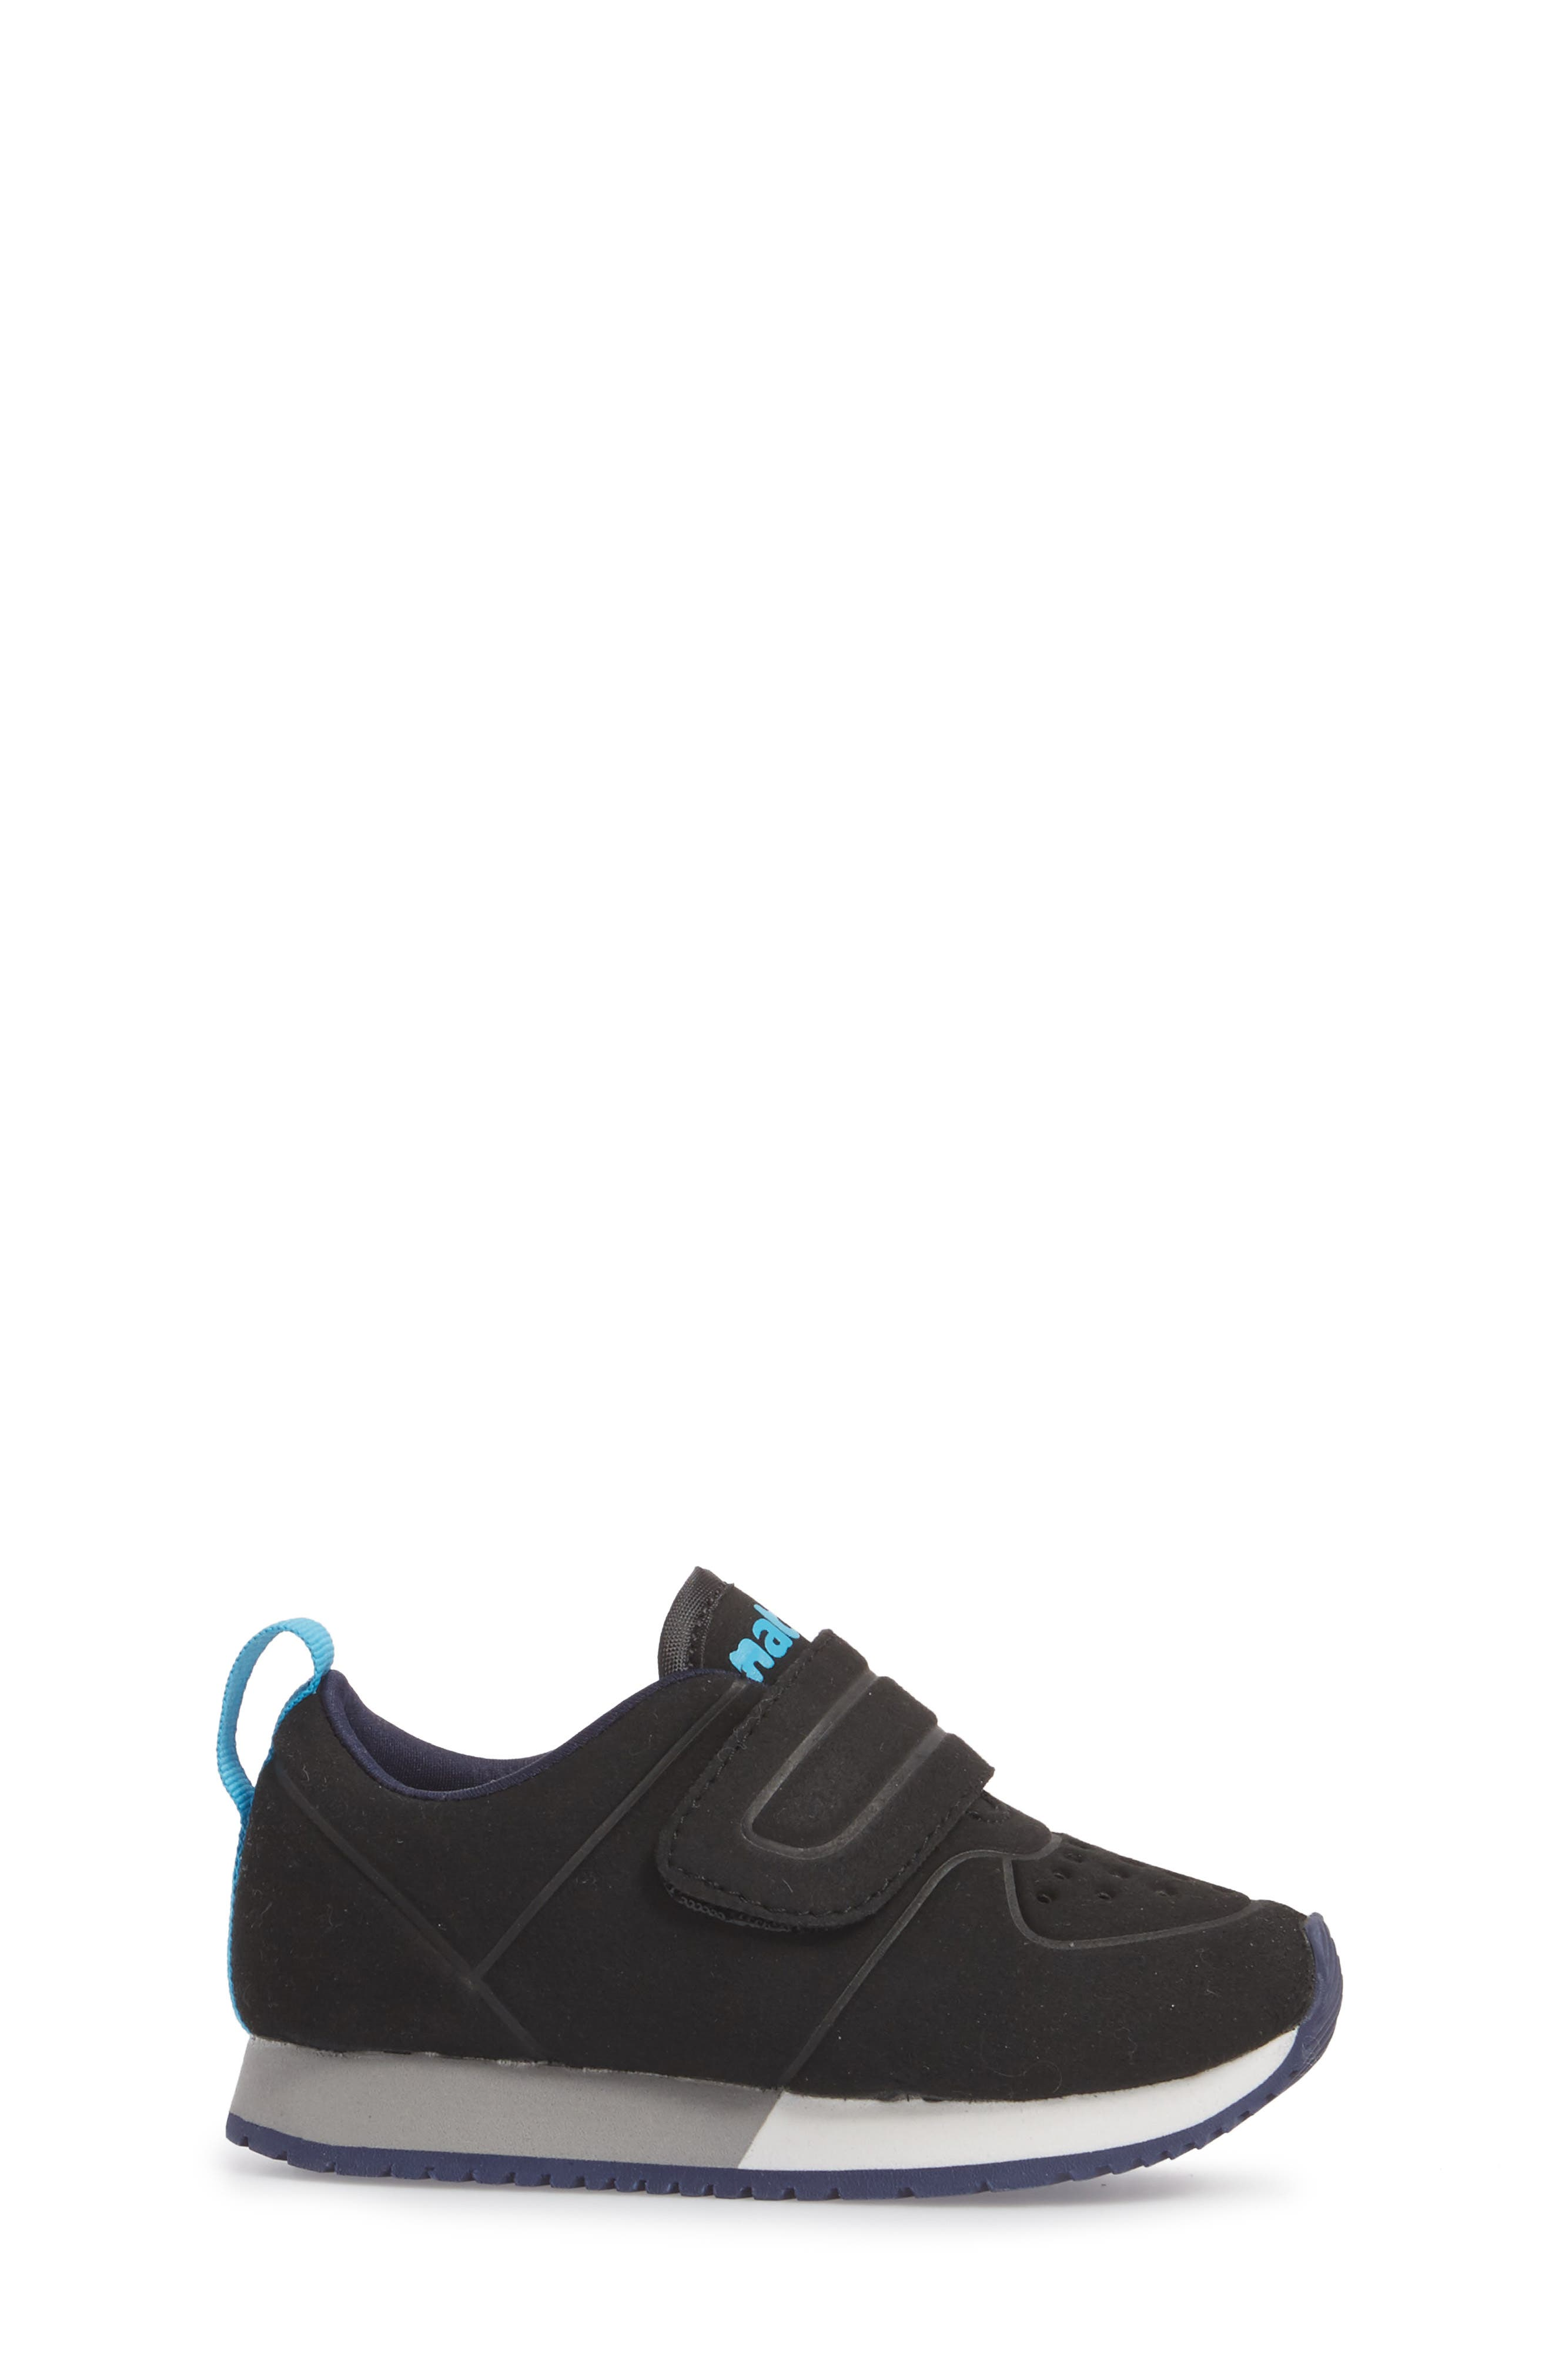 Native Cornell Perforated Sneaker,                             Alternate thumbnail 3, color,                             019